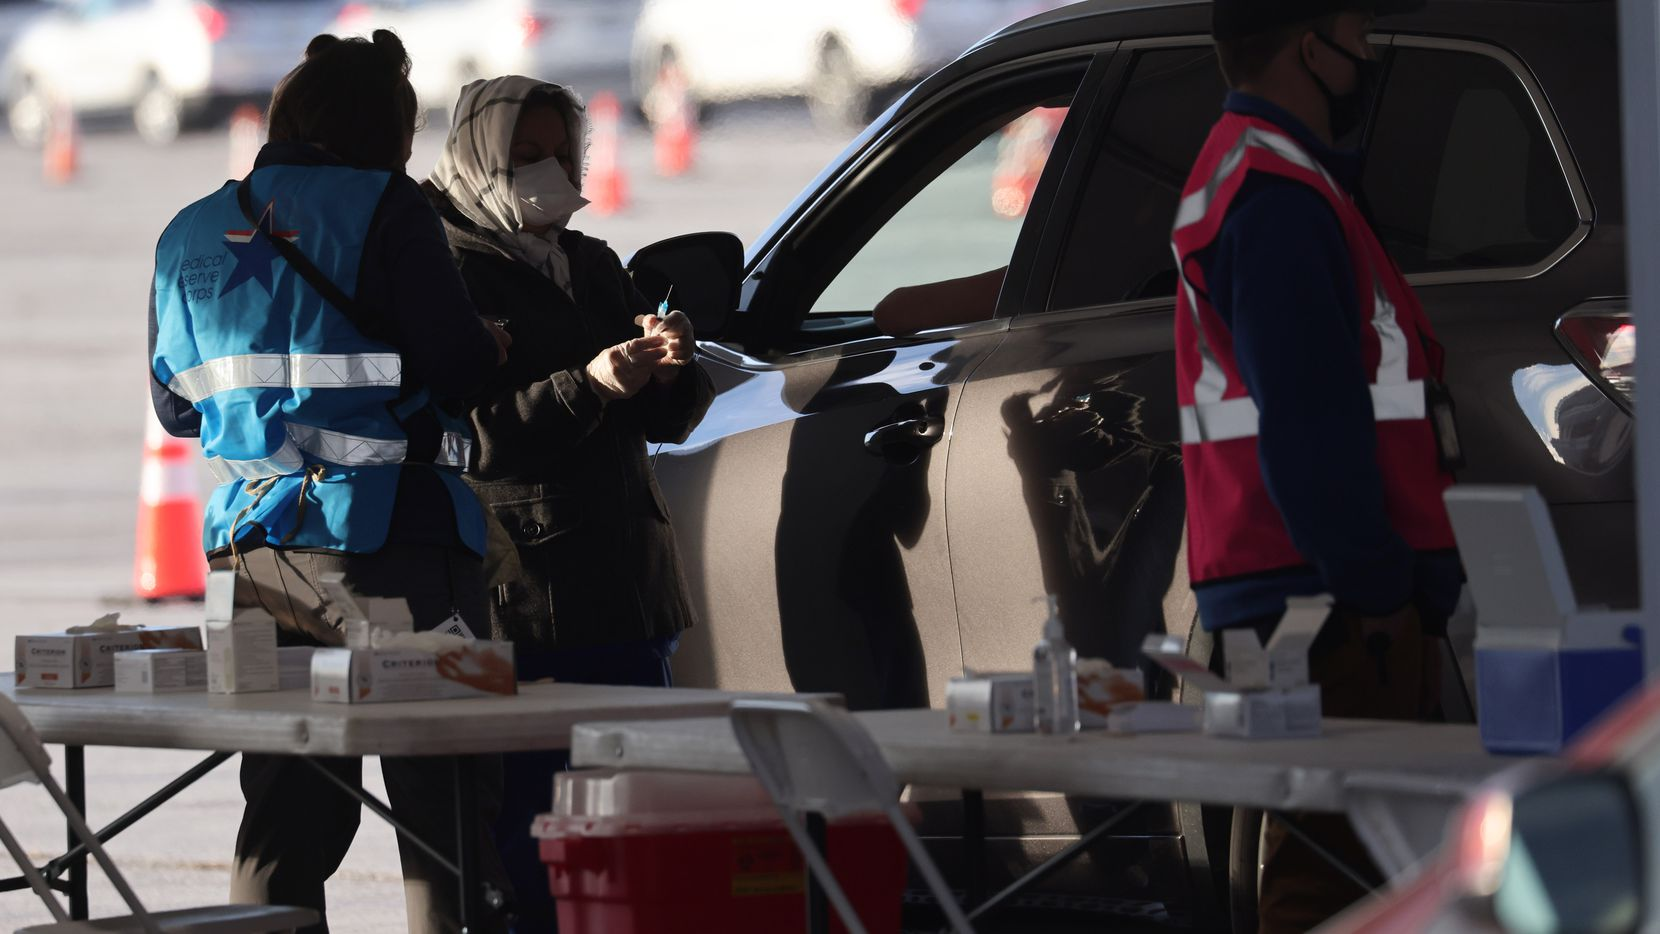 Denton County medical personnel give COVID-19 vaccine shots at a drive-through vaccination clinic at Texas Motor Speedway on Tuesday, February 2, 2021, in Fort Worth. Denton County medical personnel plan to vaccinate 10,000 residents per day.